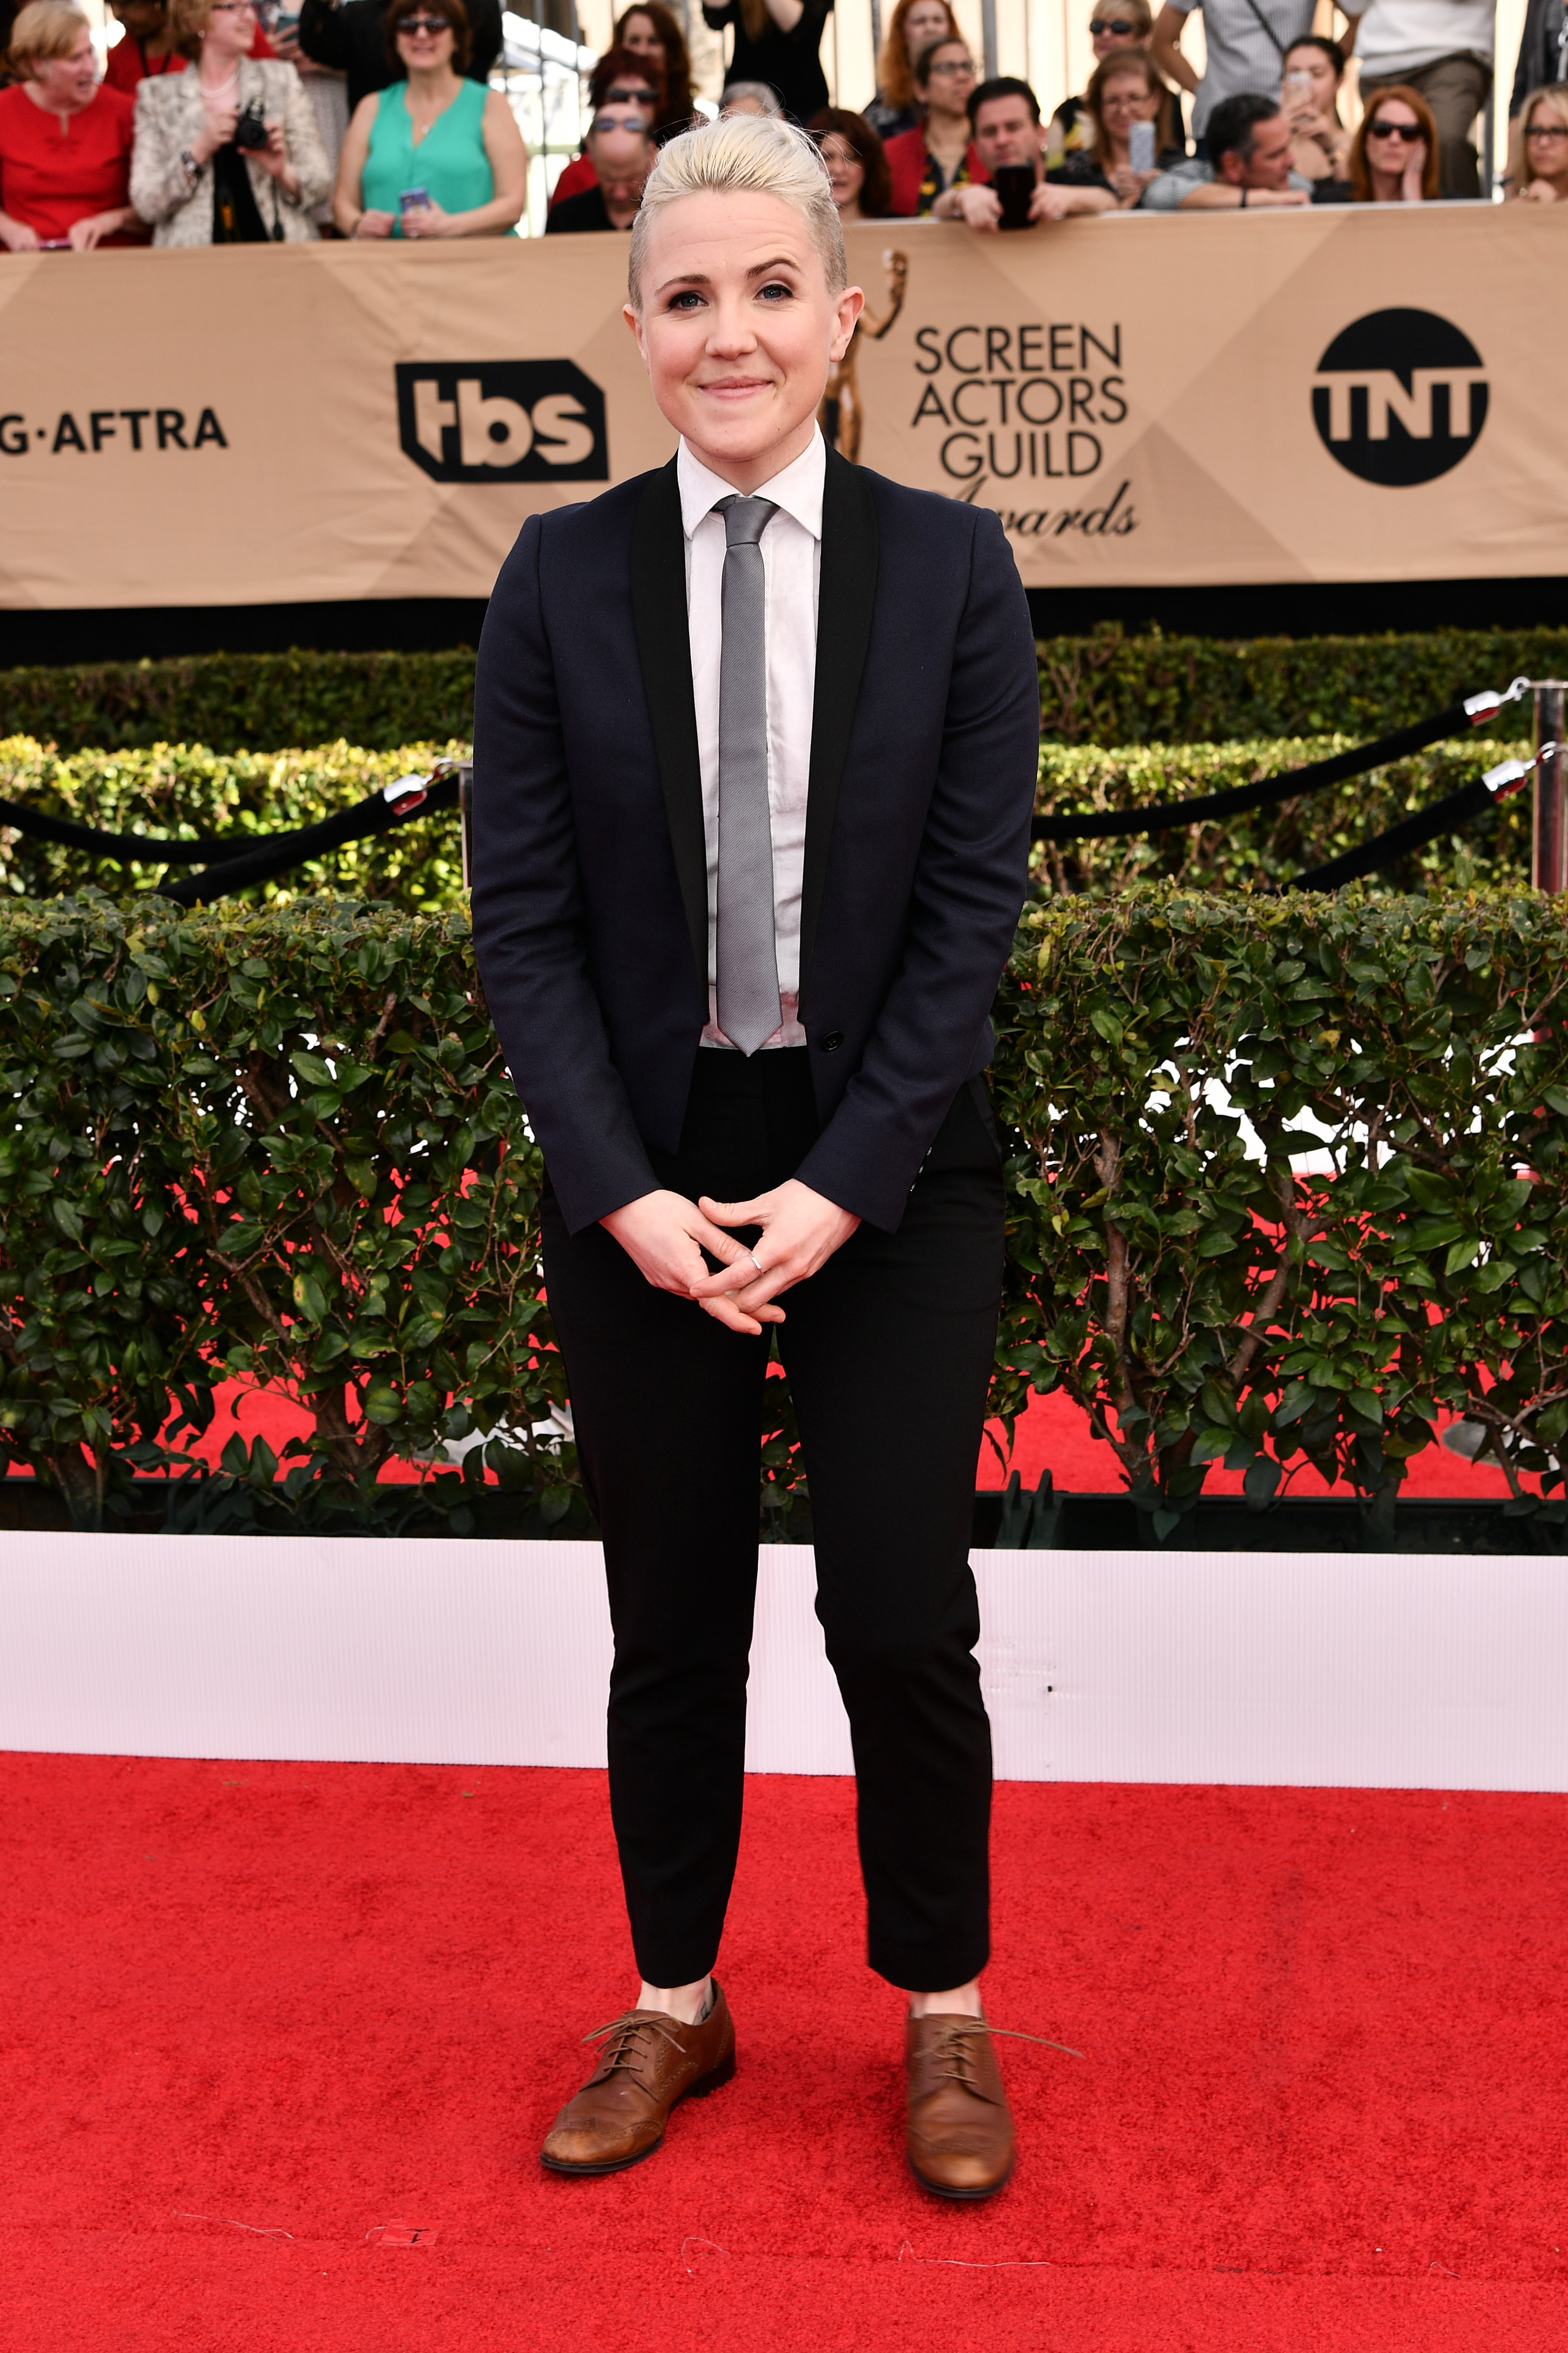 Hannah Hart arrives at the 23rd Annual Screen Actors Guild Awards at the Shrine Auditorium in Los Angeles on Jan. 29, 2017.